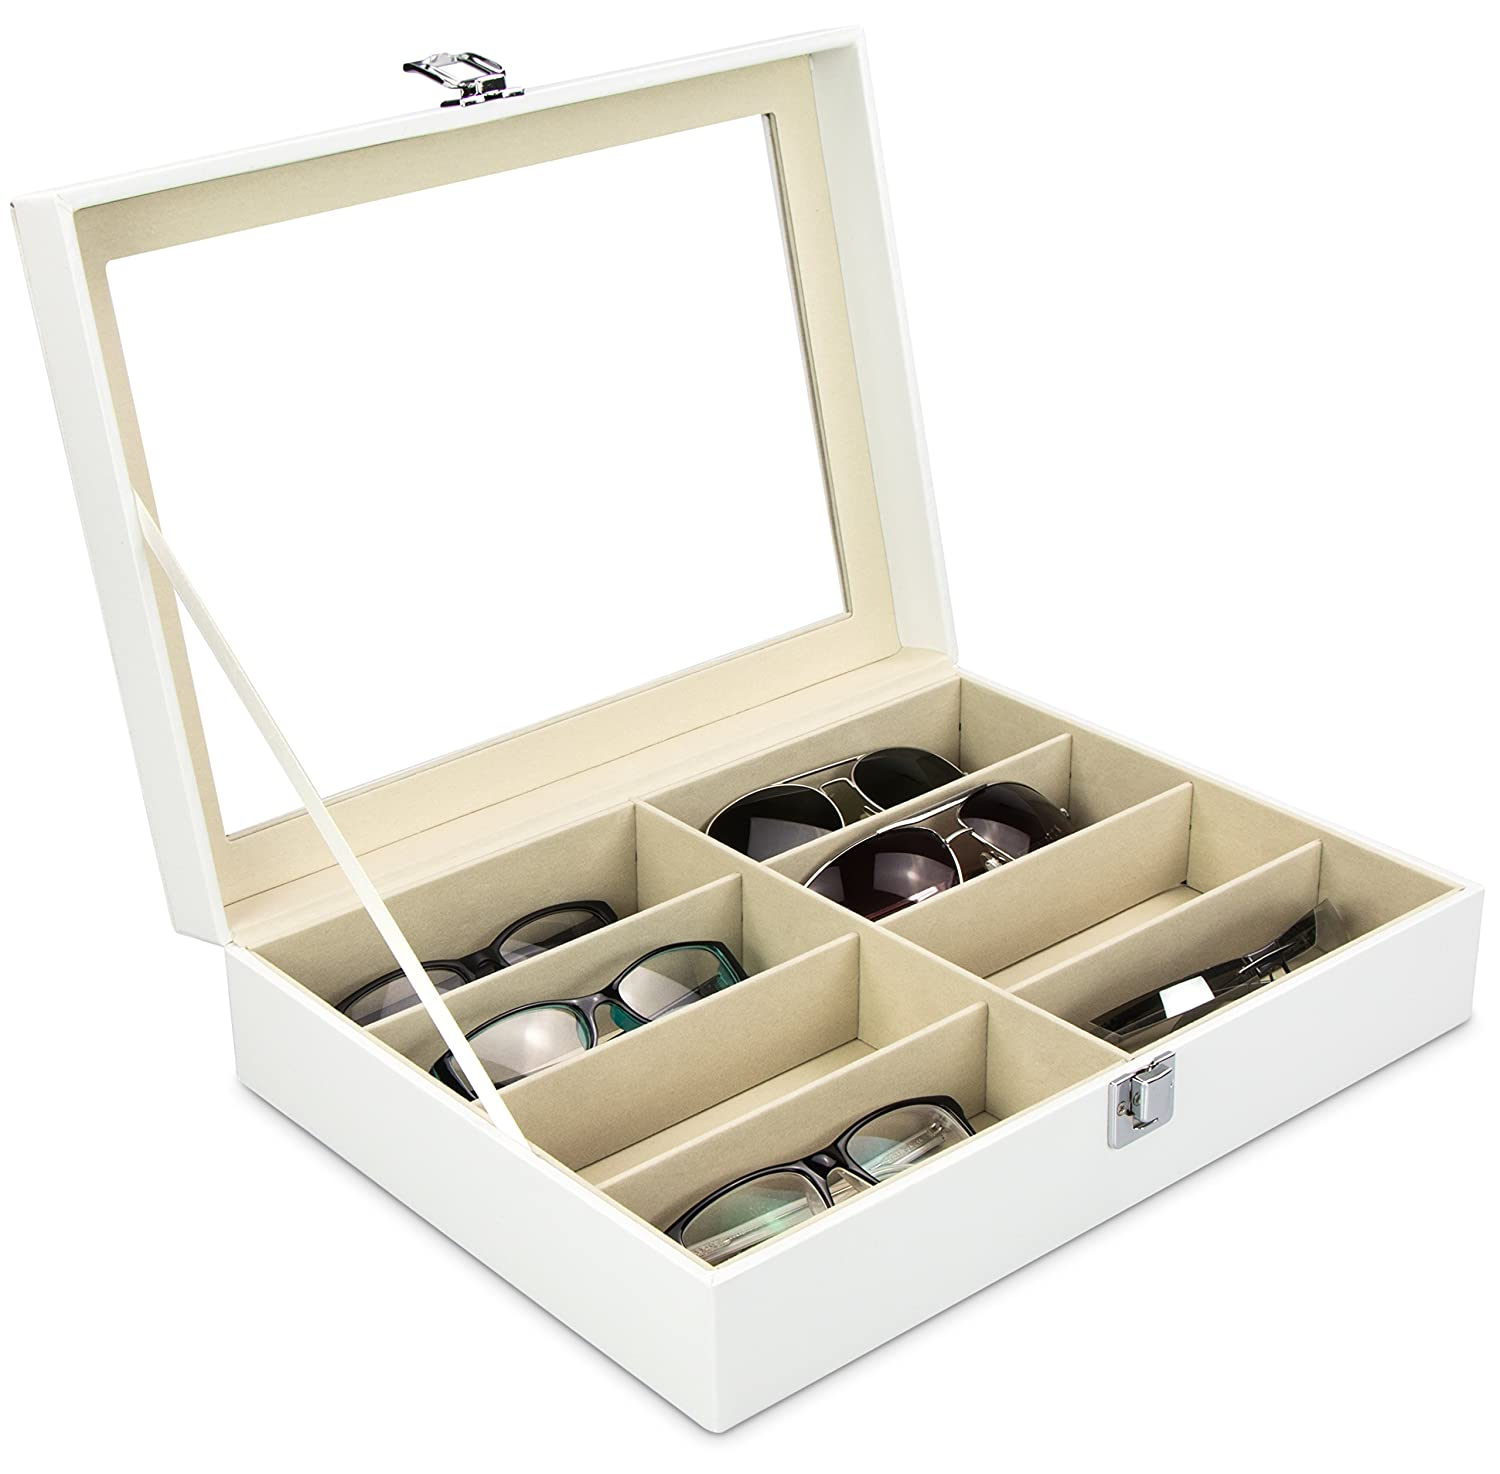 Glasses Box for 8 Spectacles - White 34 x 25 x 8 cm - Display Organizer for Storage and Presentation - Grinscard Venkon